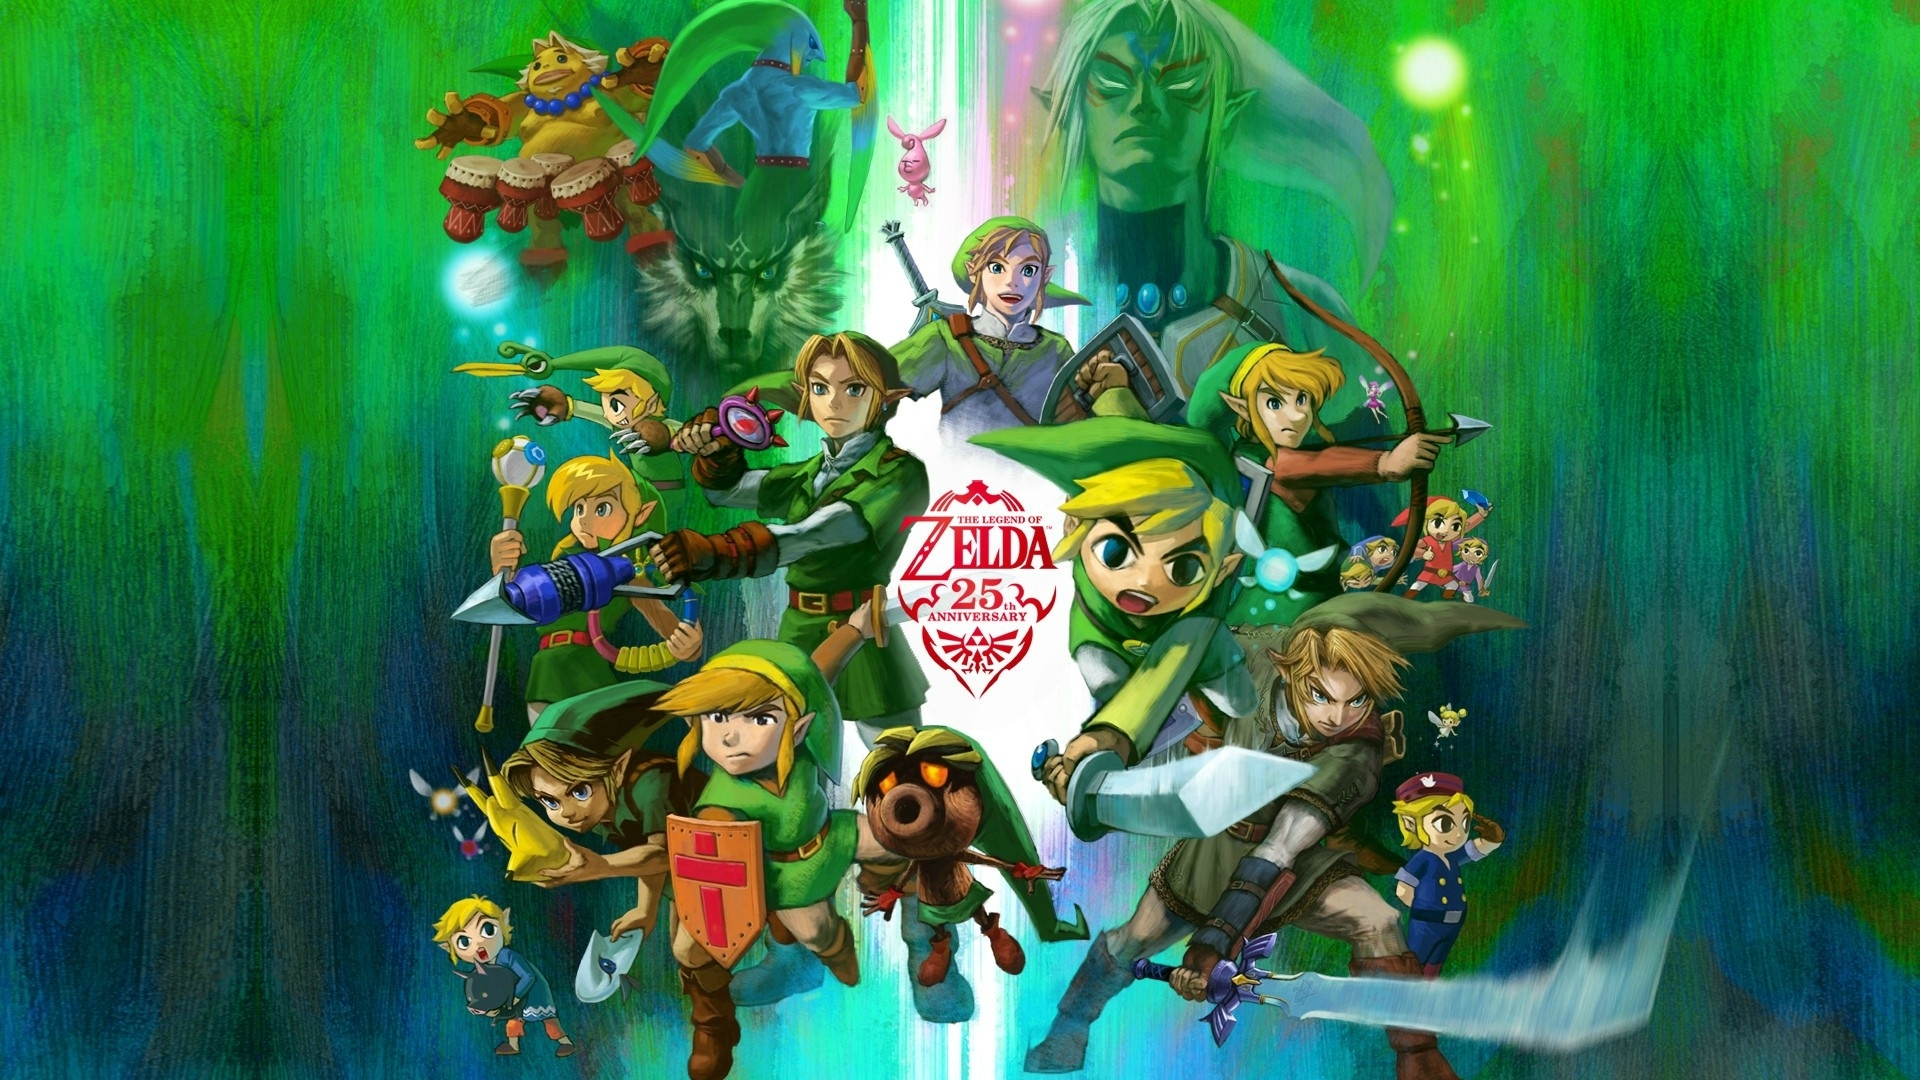 legend of zelda wallpaper hd. - media file | pixelstalk